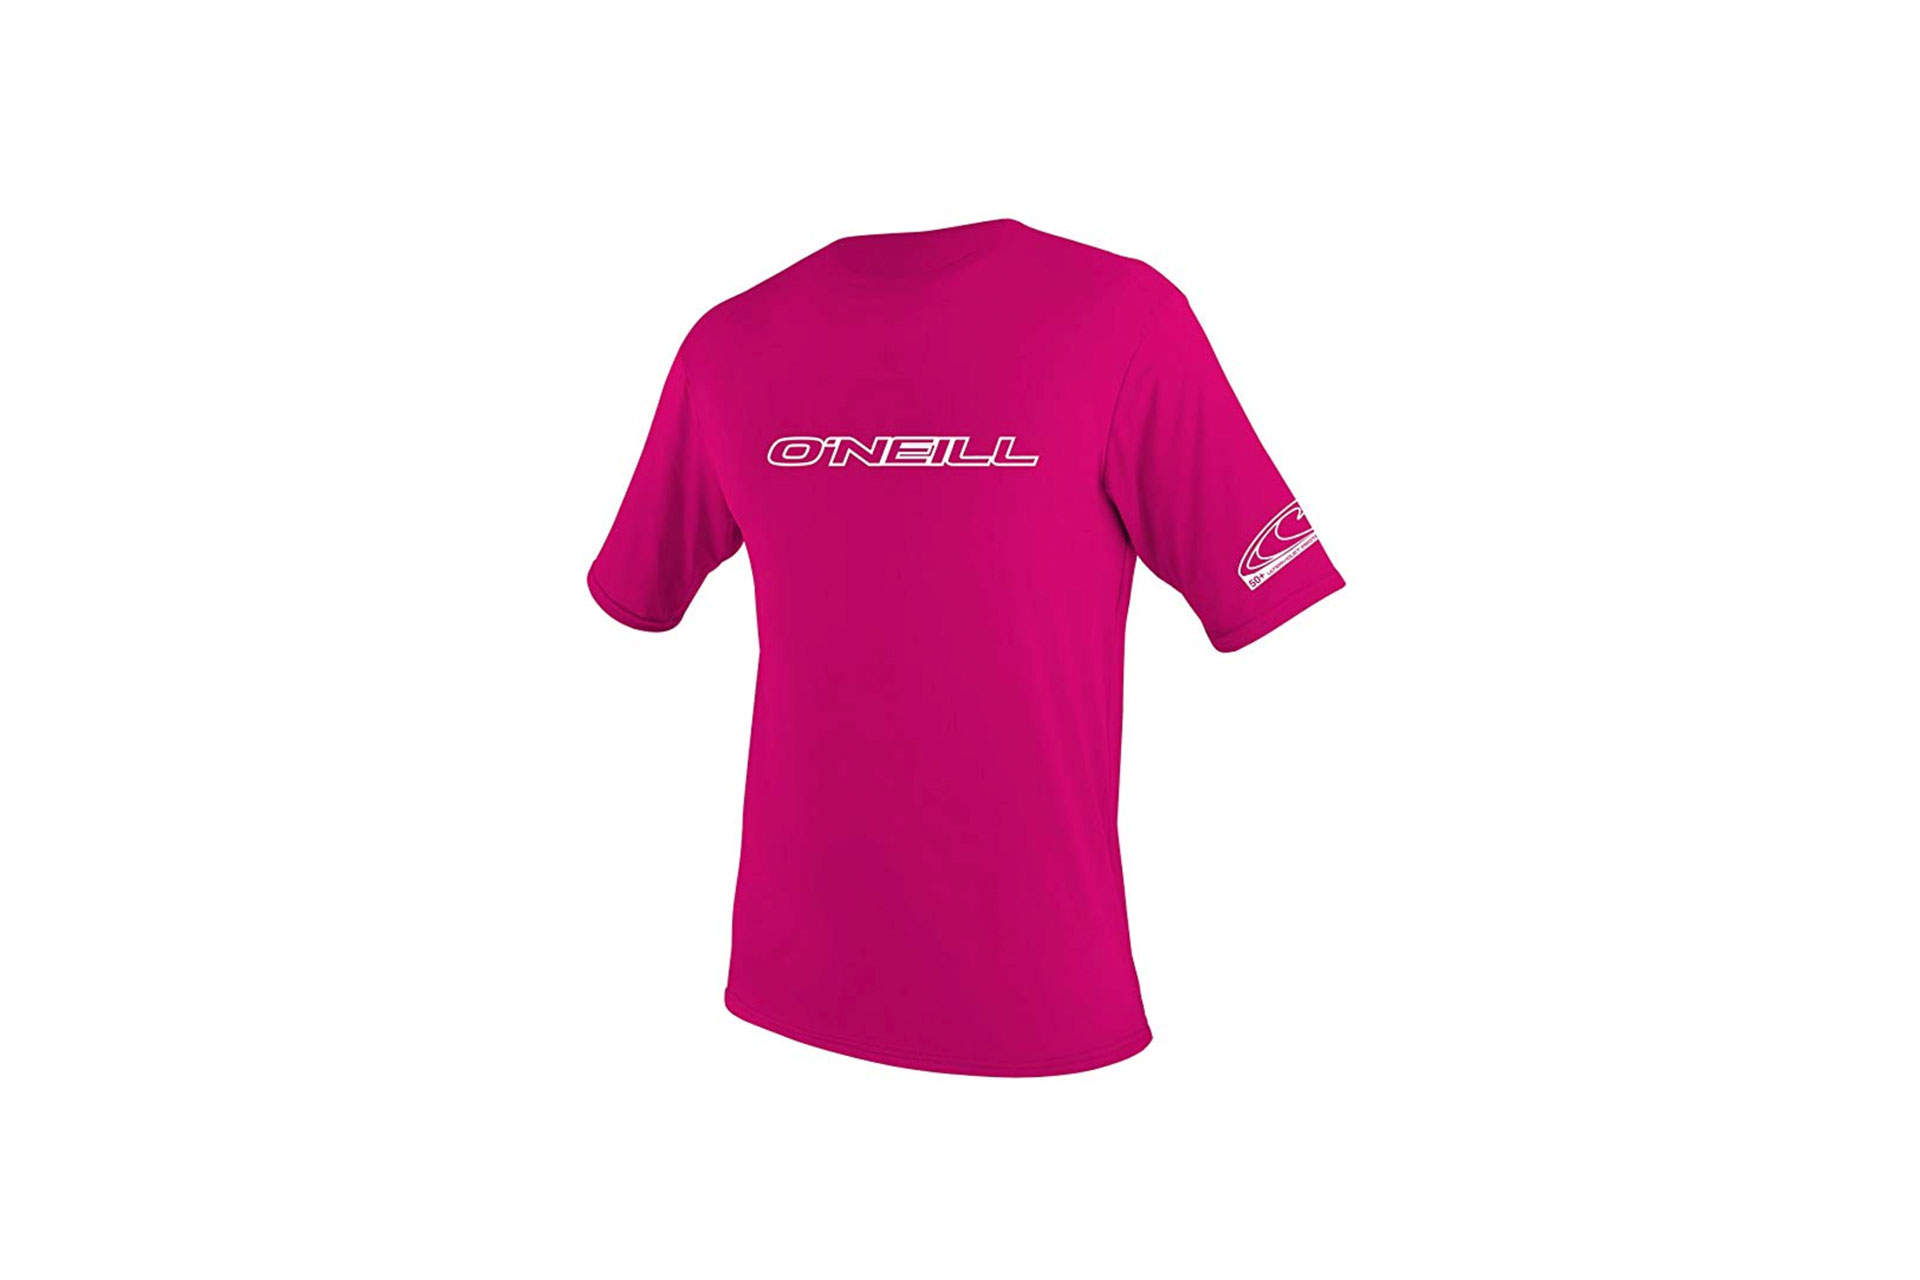 O'Neill Rash Guard in Pink; Courtesy of Amazon